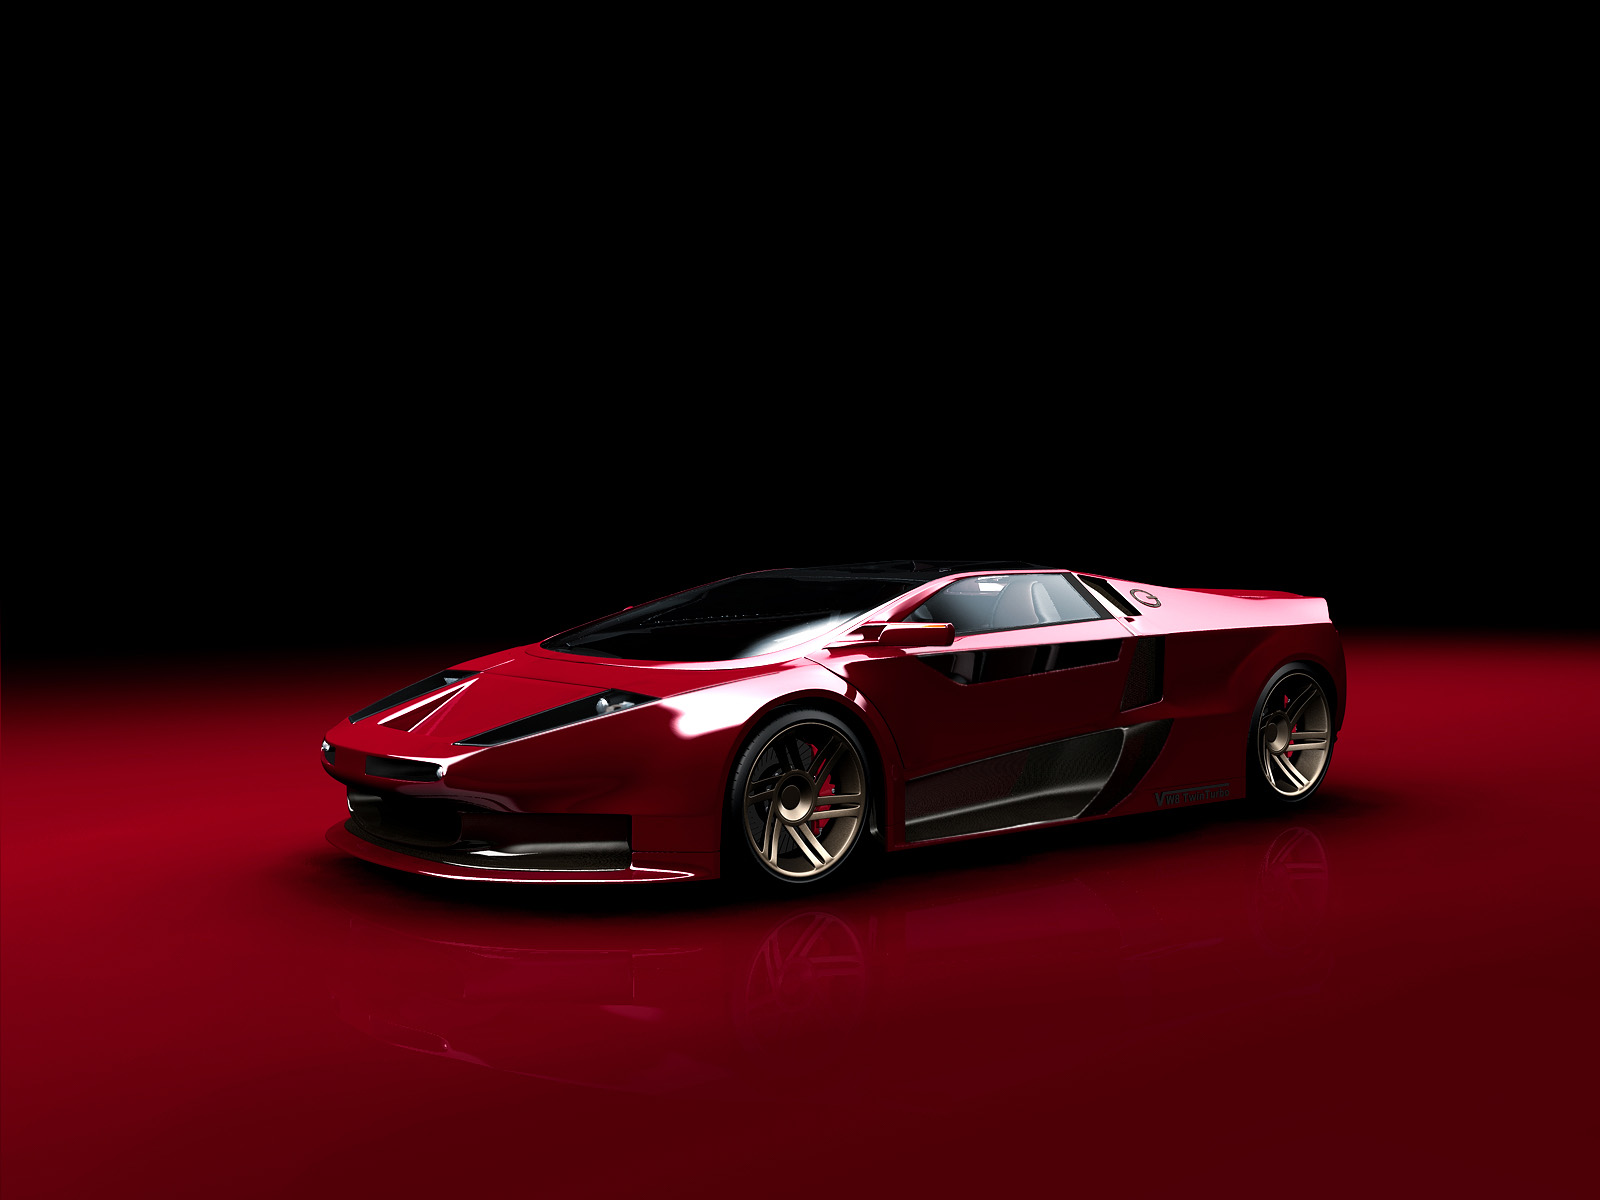 Car Slideshow Wallpaper 3 Vector W8 Hd Wallpapers Background Images Wallpaper